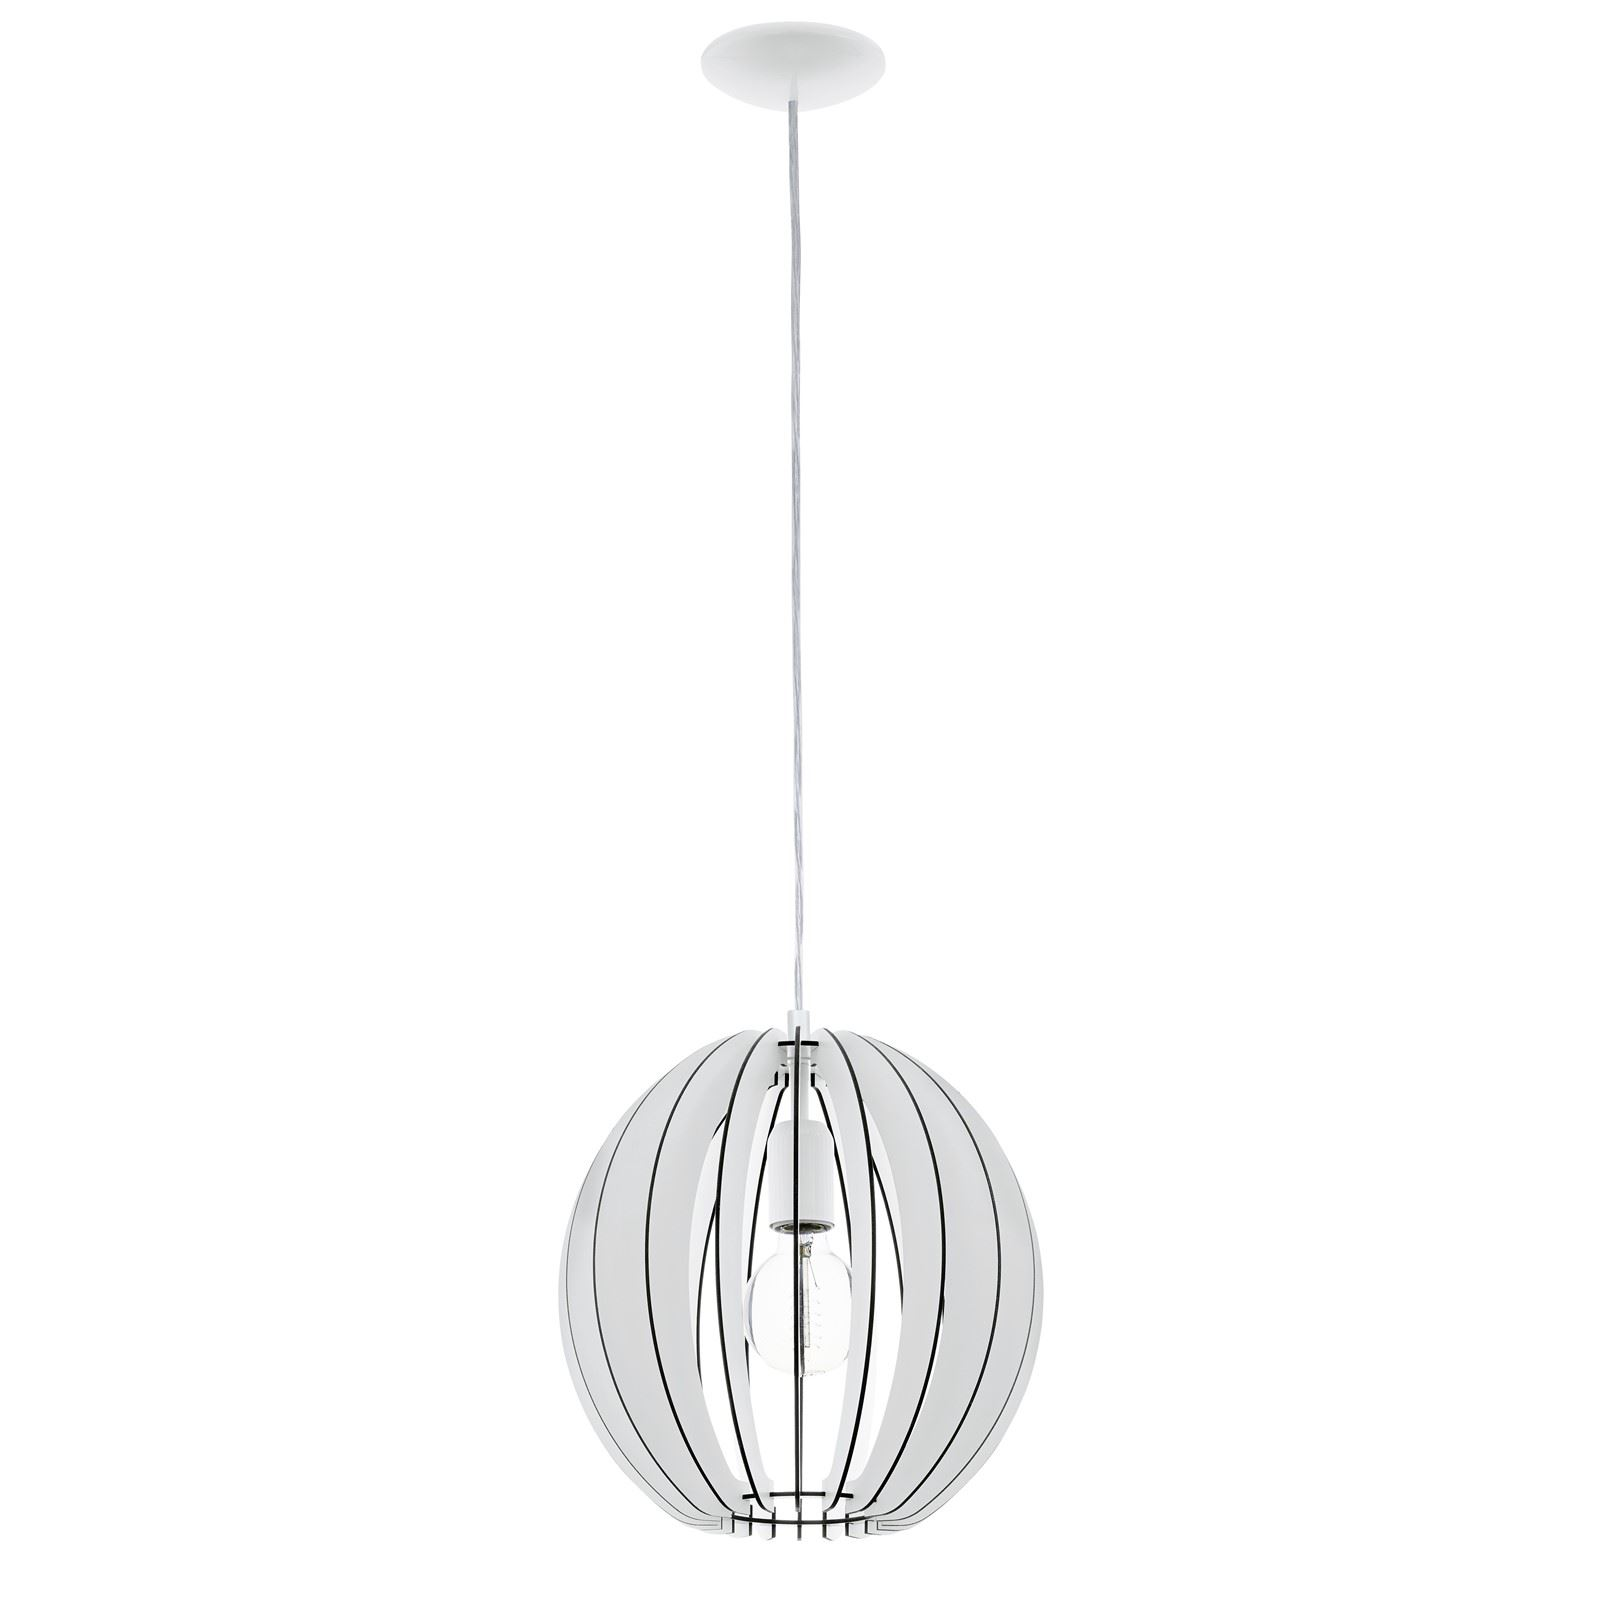 Cossano 1 Hanging Pendant Light E27 Dia 300mm Wood White Shade